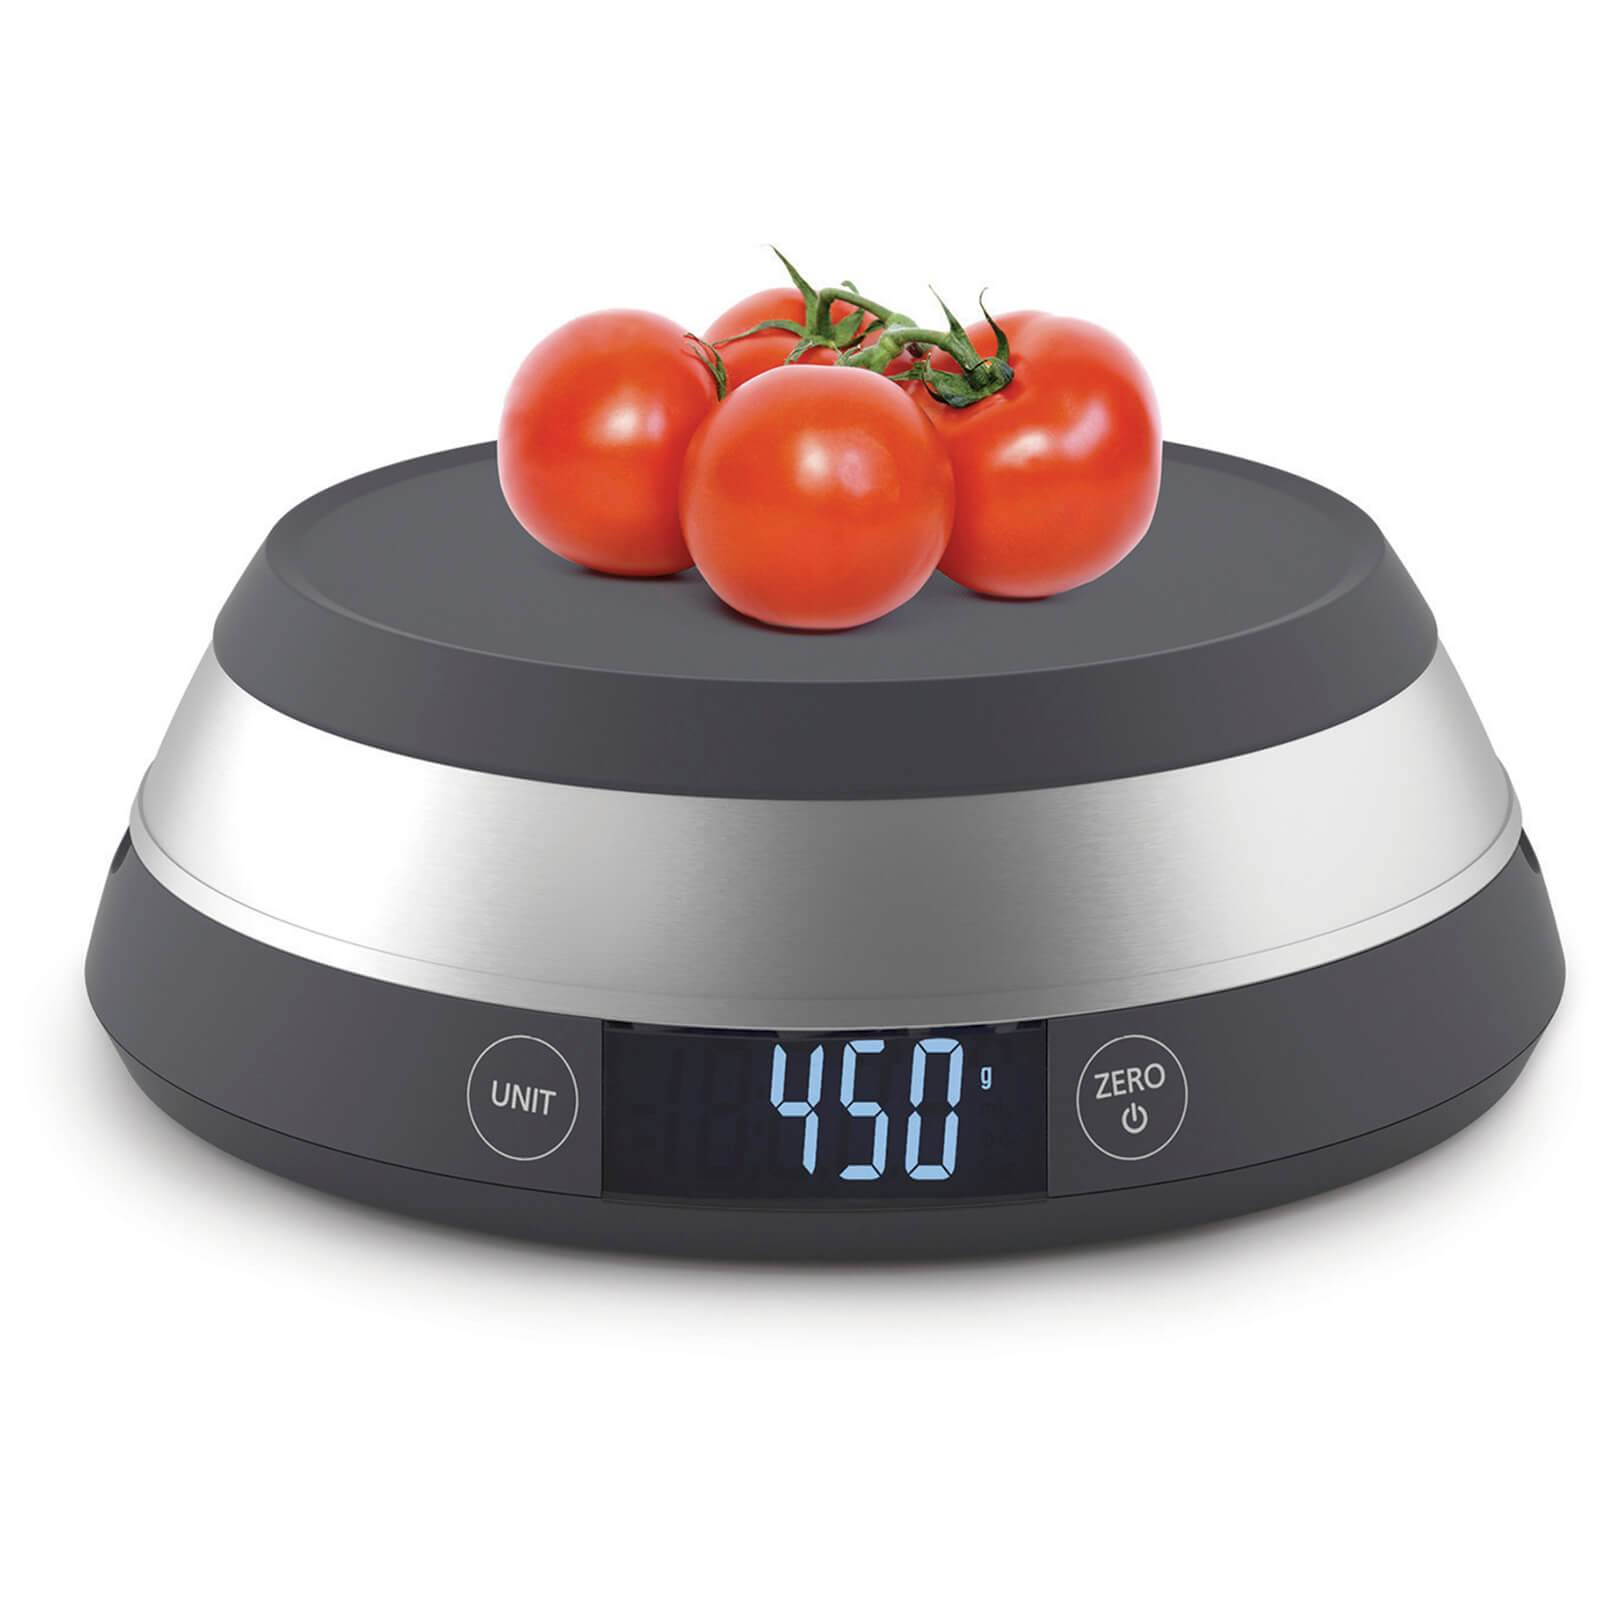 Joseph Joseph Switch Led Kitchen Scale With Removable Bowl - Grey